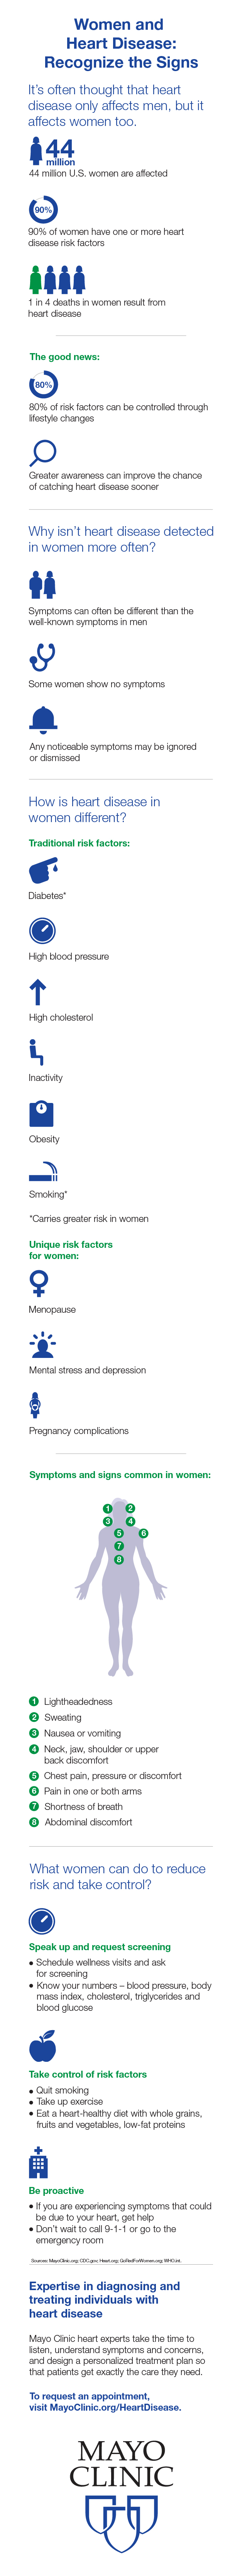 Infographic image for women and heart disease